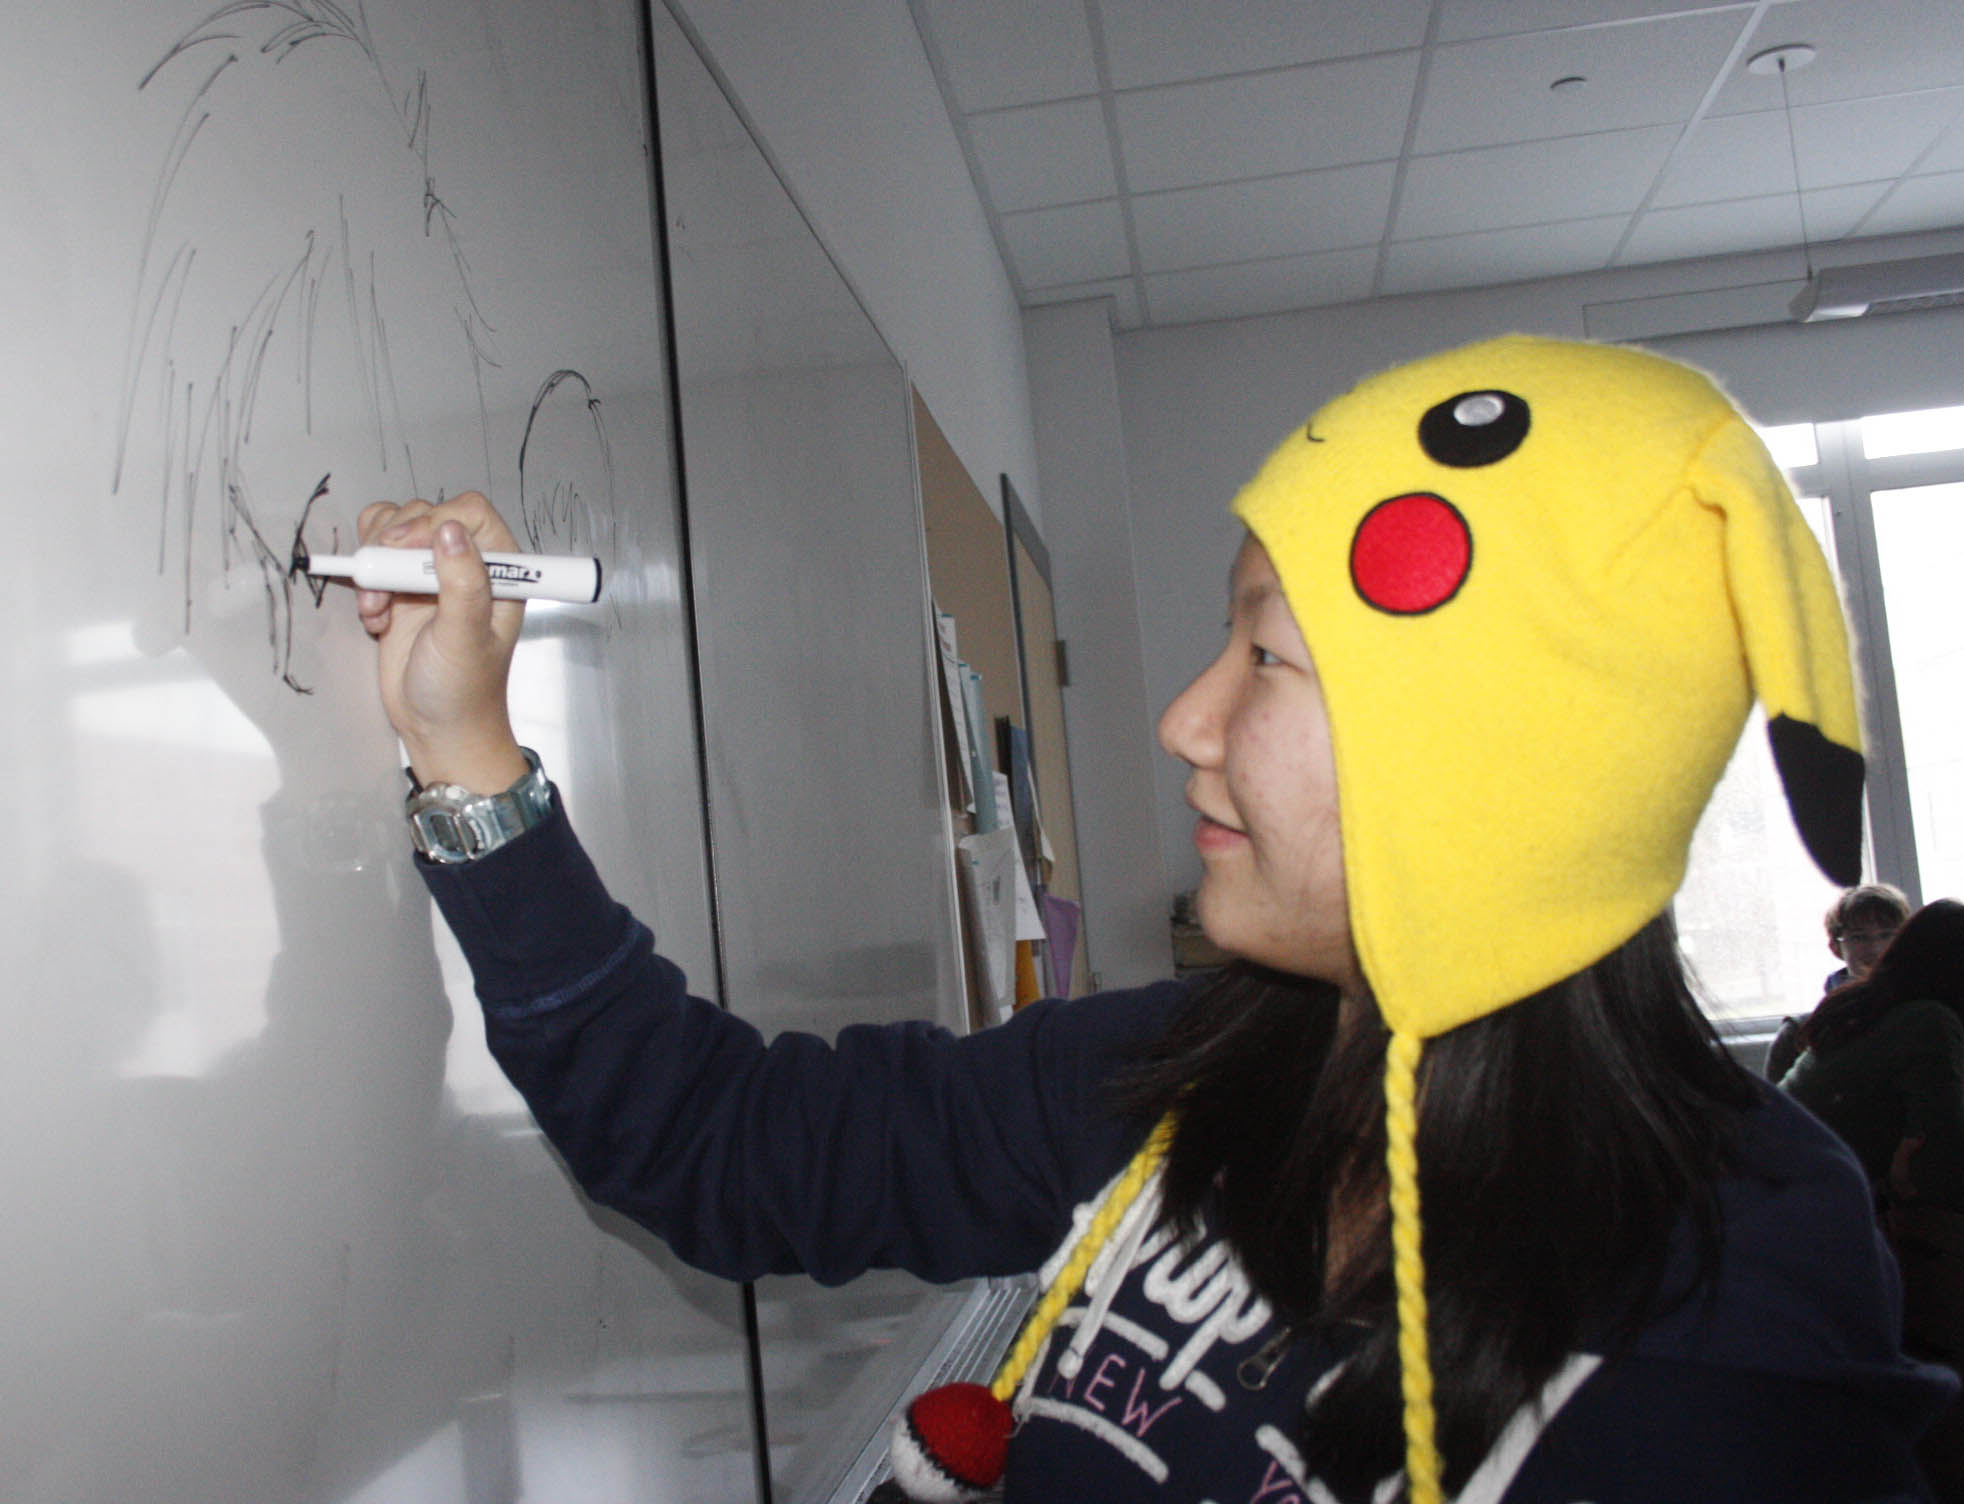 Freshman Joanna Le draws on the white board during Japanese film and anime club.